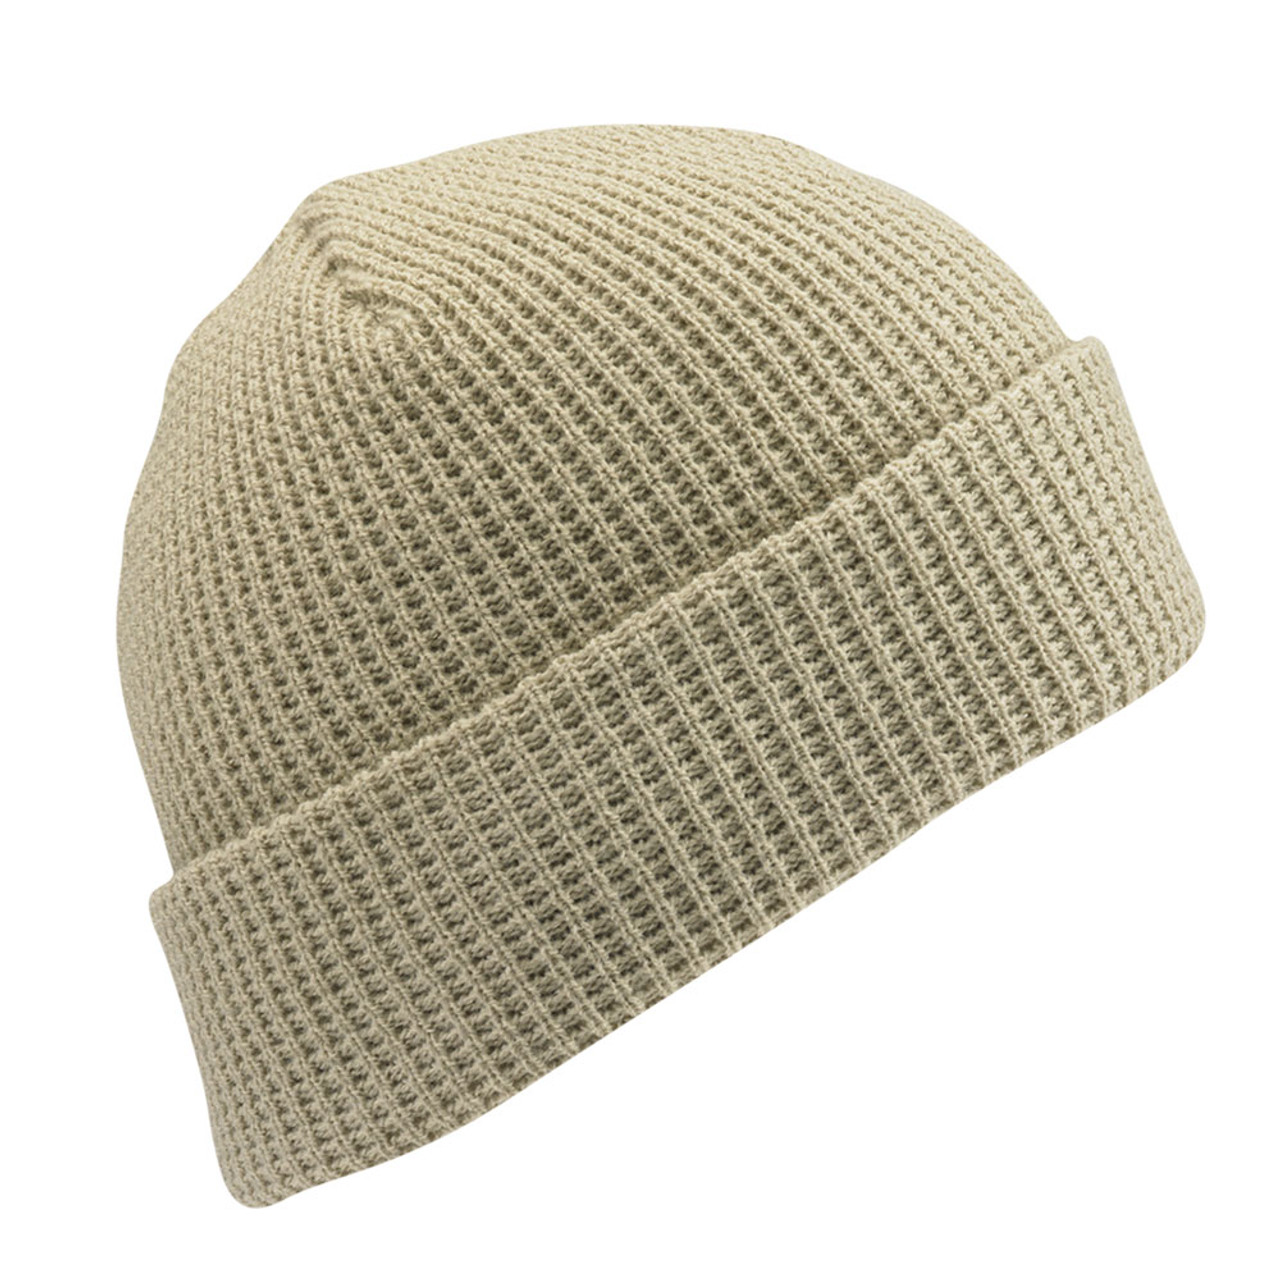 Wigwam Tundra Cap Winter Hat. Cold Weather Gear. 0d4748d3707